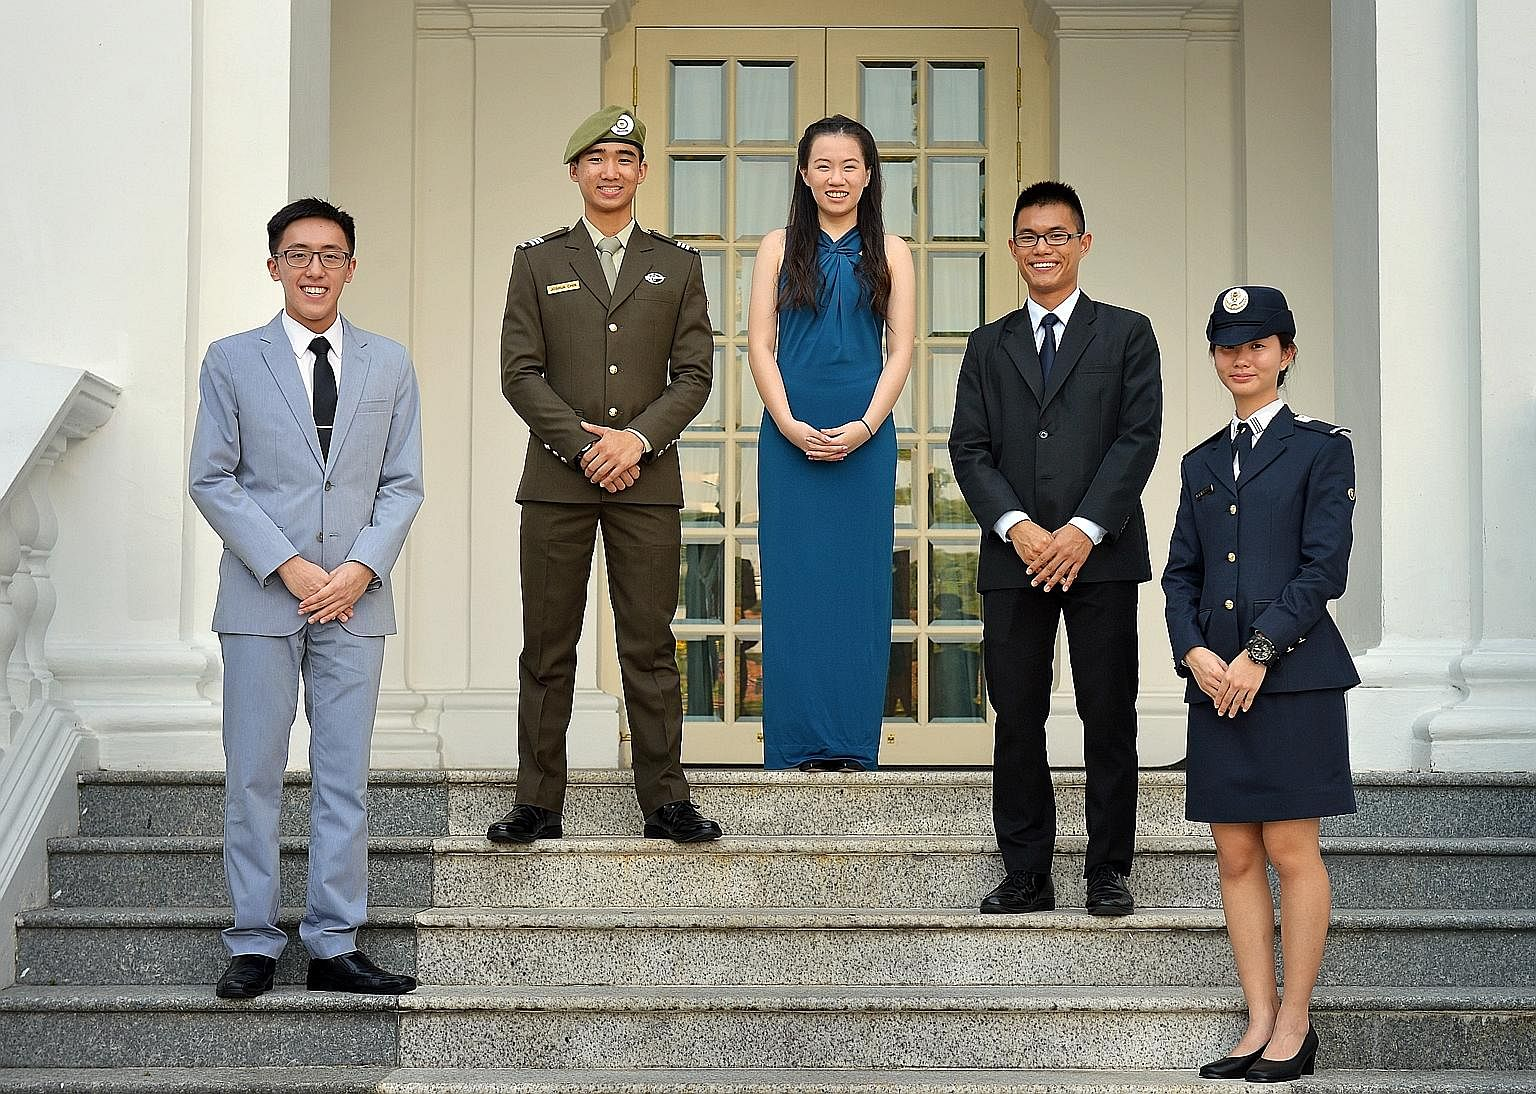 This year's President's Scholars are (from left) Sean Ong Zhi Han, Joshua Chin Zen Jie, Olivia Ong Si Hui, Timothy Ong Kah Yong and Natasha Ann Lum Mei Seem. They were picked by the Public Service Commission for their character, leadership potential